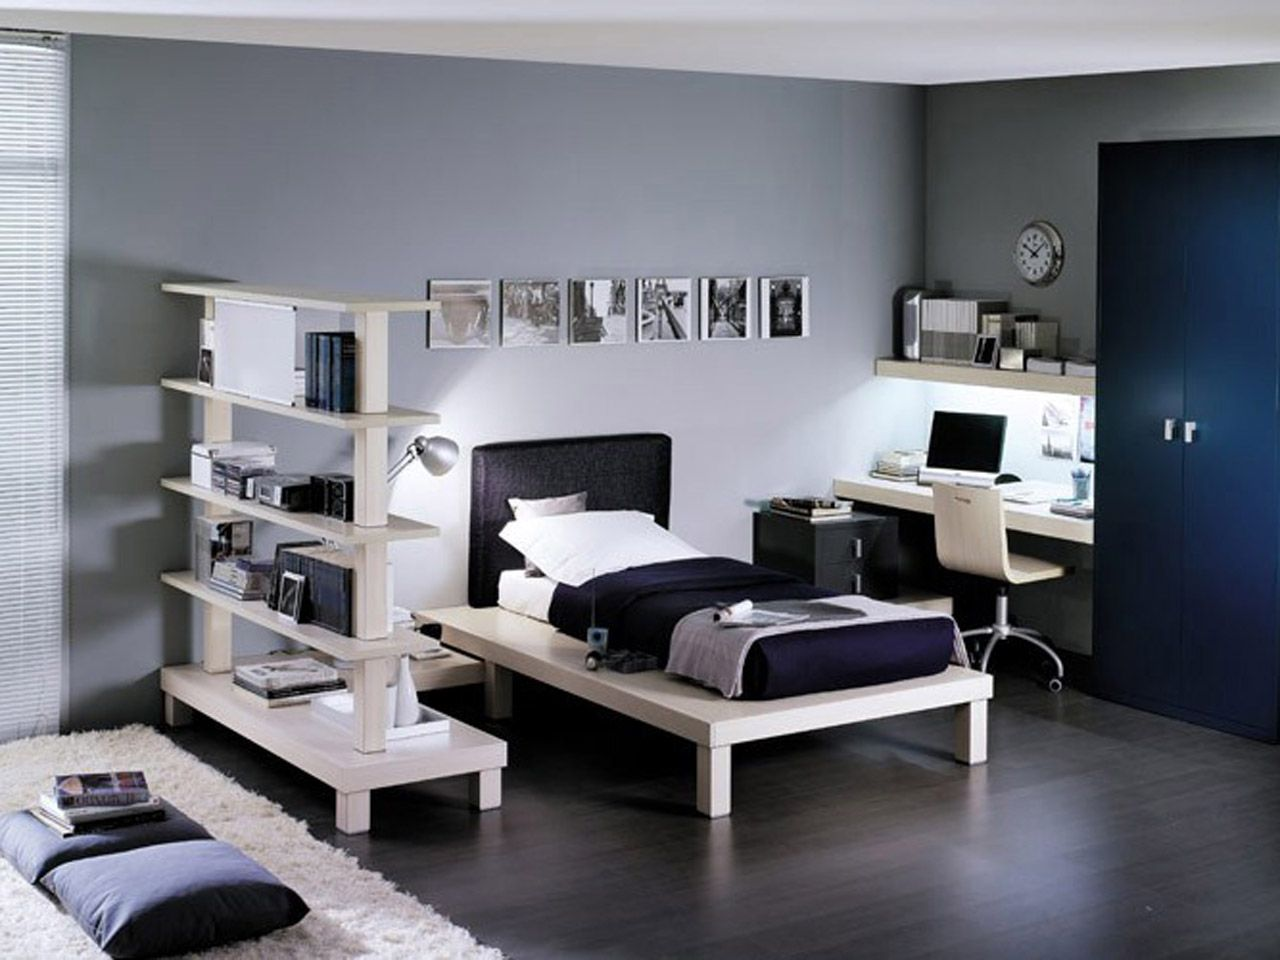 Black Bedroom Furniture For Girls 134 best kids bedroom images on pinterest | nursery, bedroom